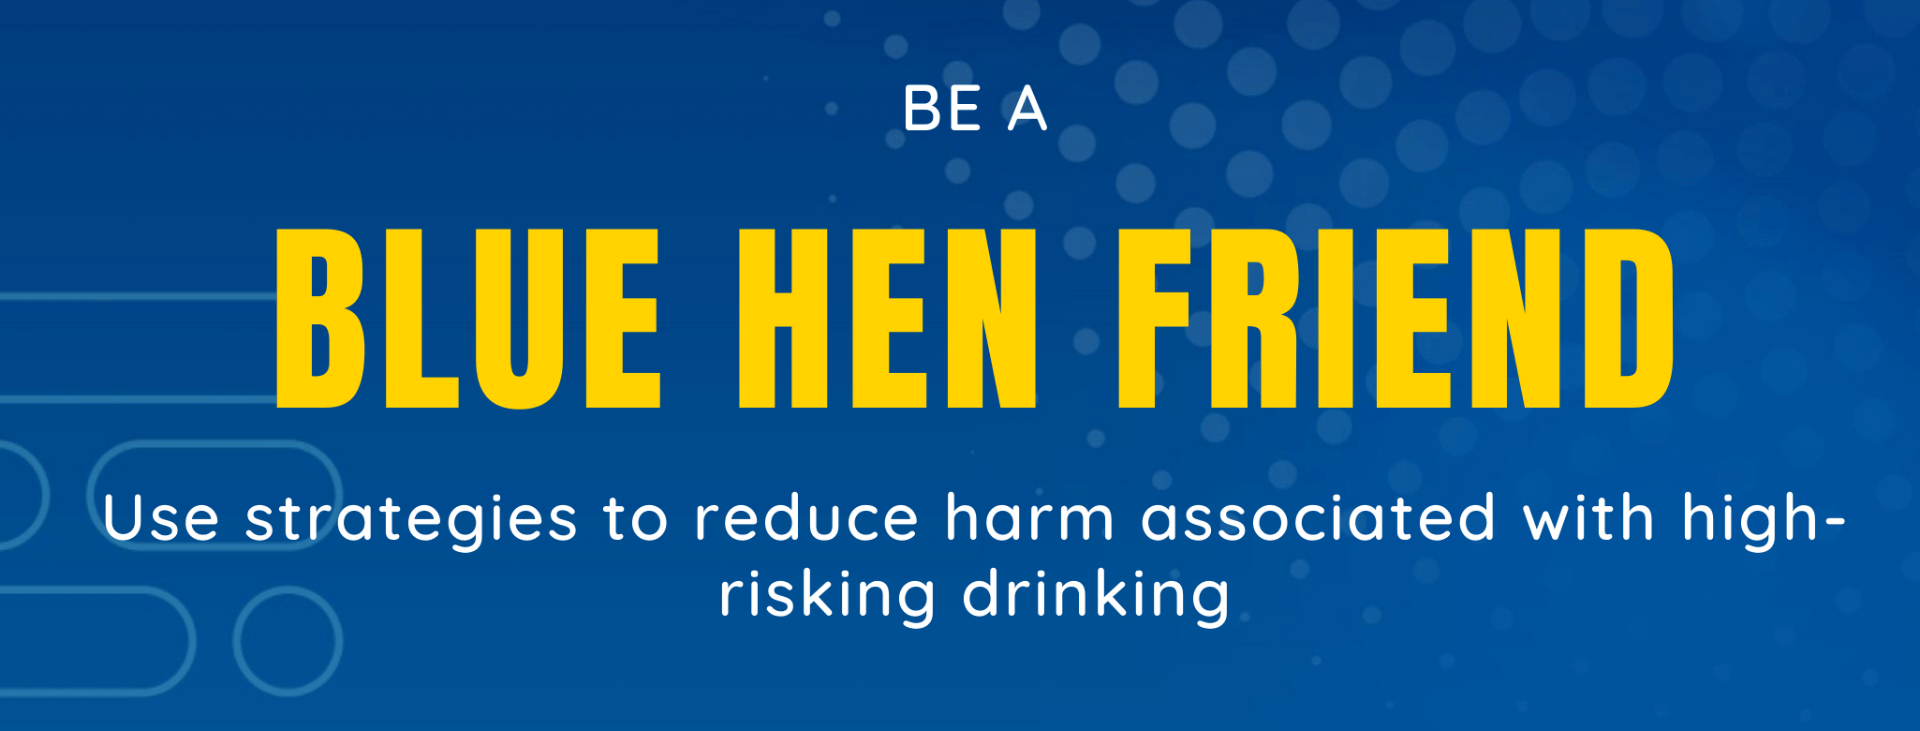 text: be a blue hen friend: use strategies to reduce harm associated with high risk drinking.